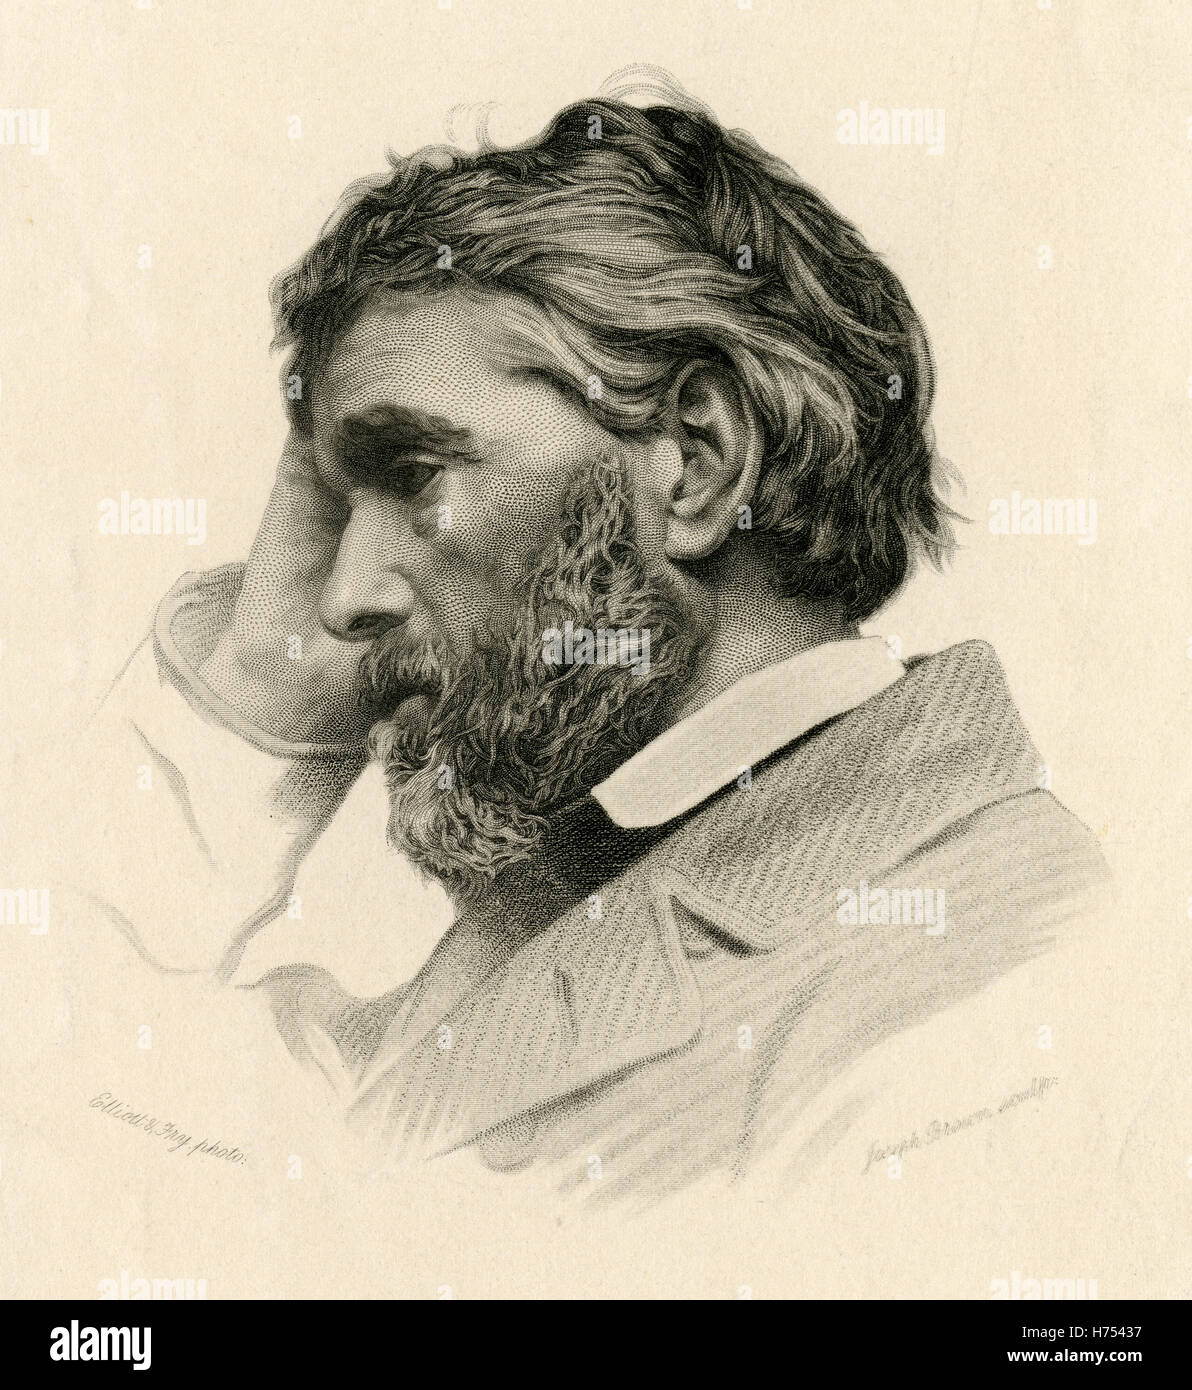 Antique c1865 steel engraving of Thomas Carlyle. Thomas Carlyle (1795-1881) was a Scottish philosopher, satirical - Stock Image